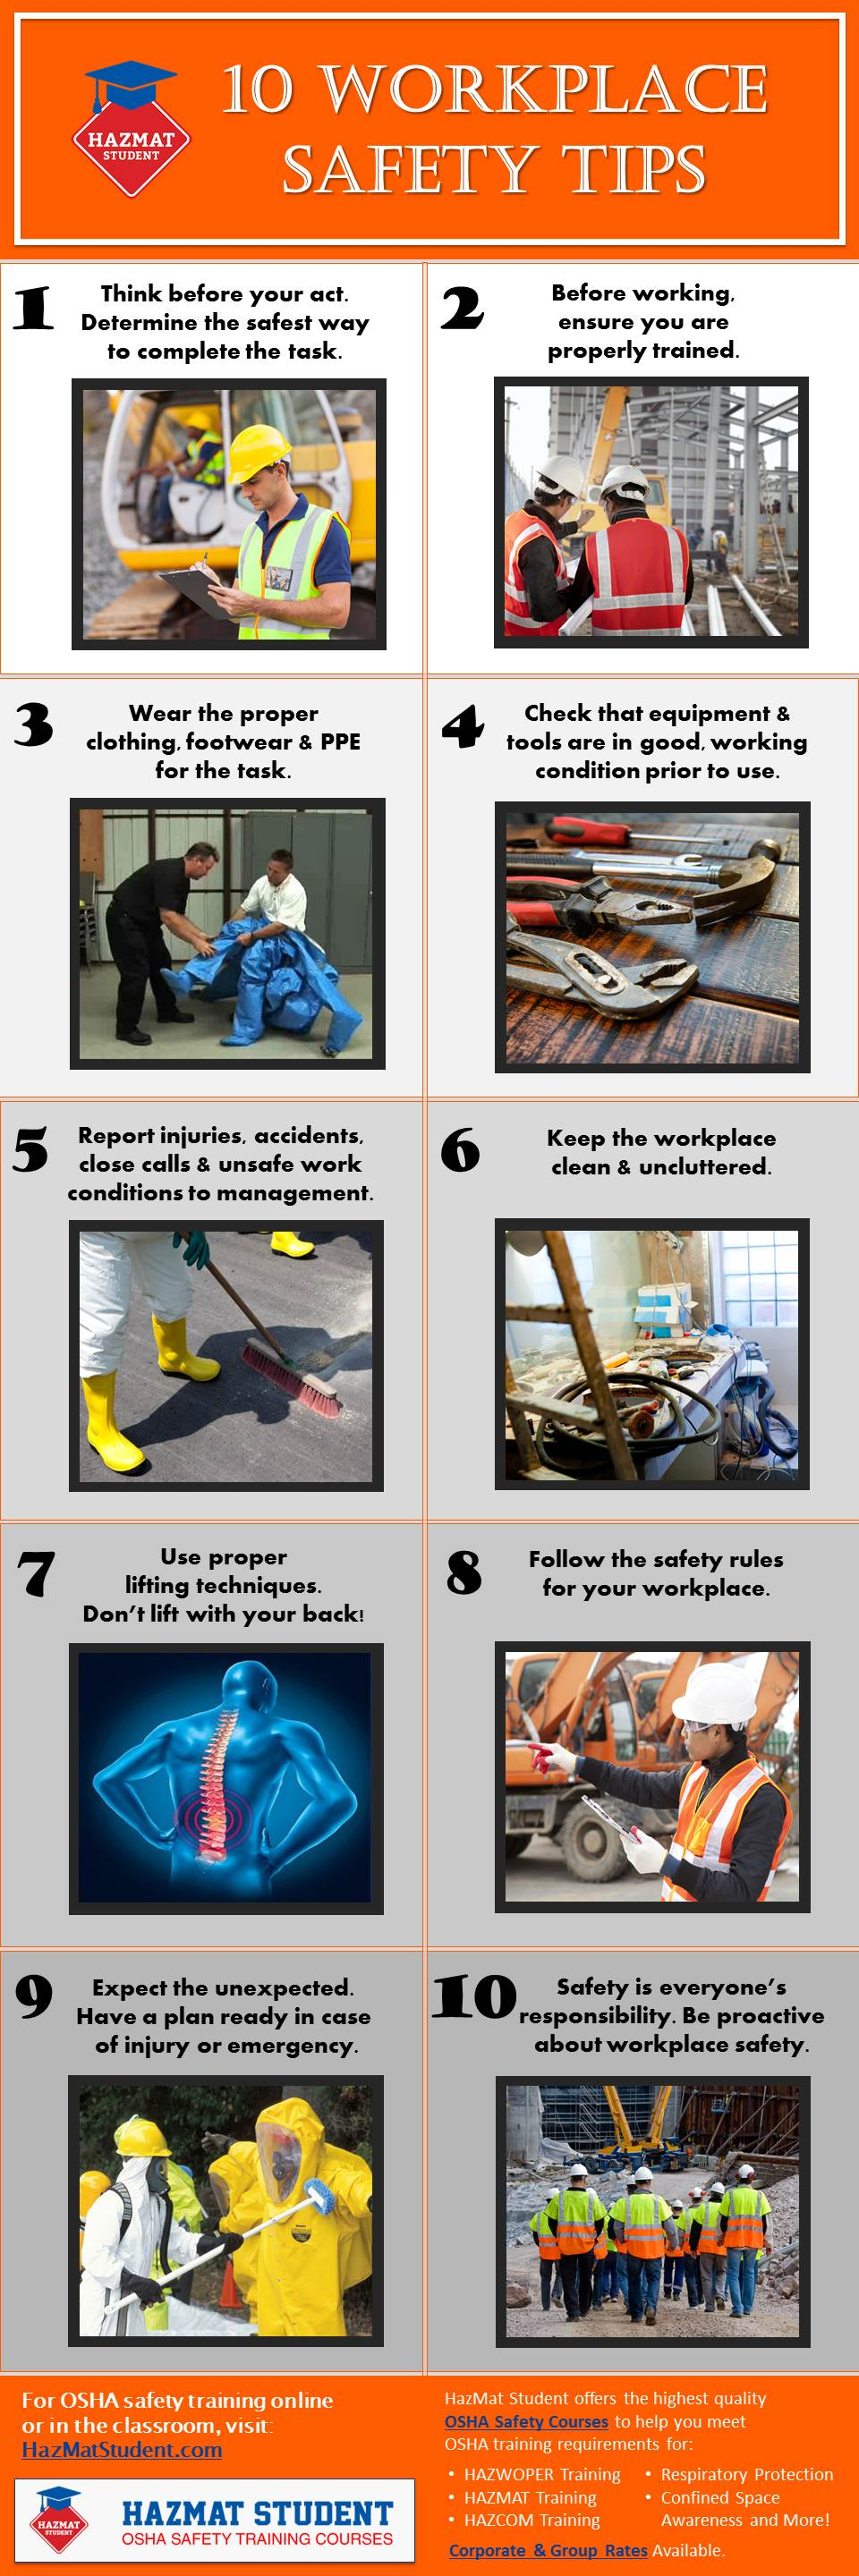 10-Workplace-Safety-Tips